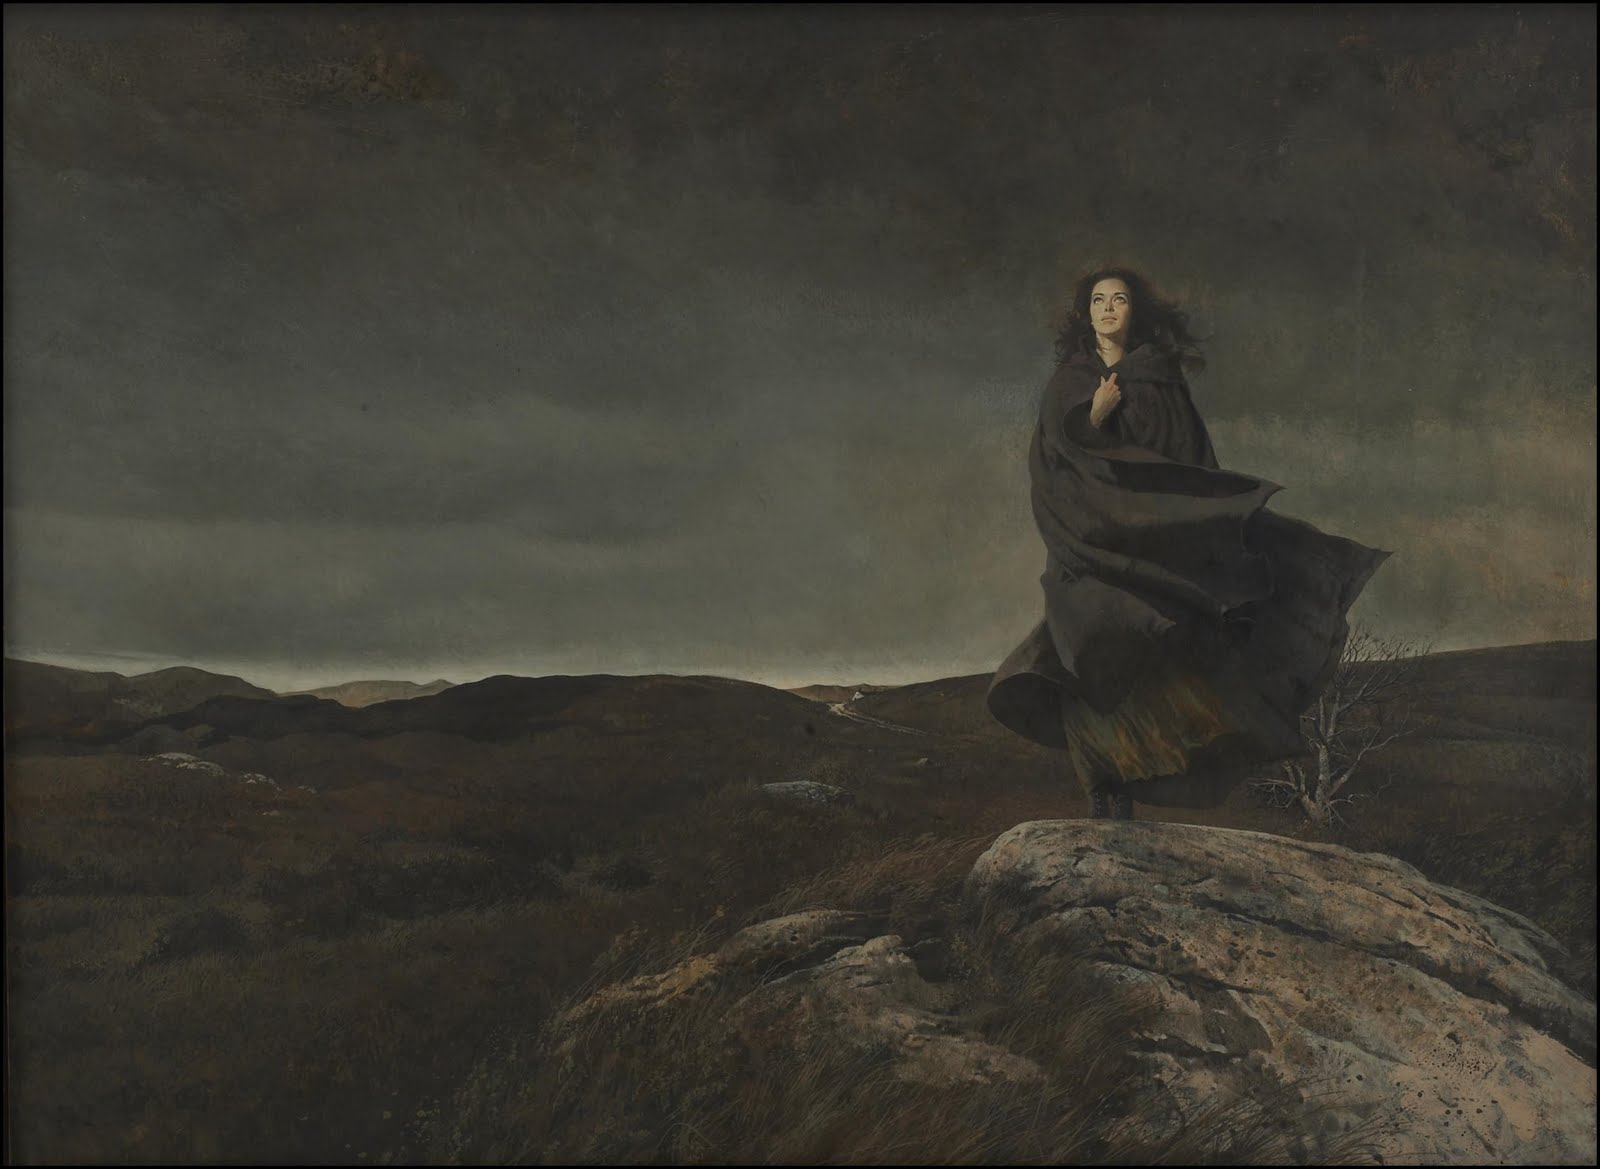 the edge reviews the classics wuthering heights by emily bronte